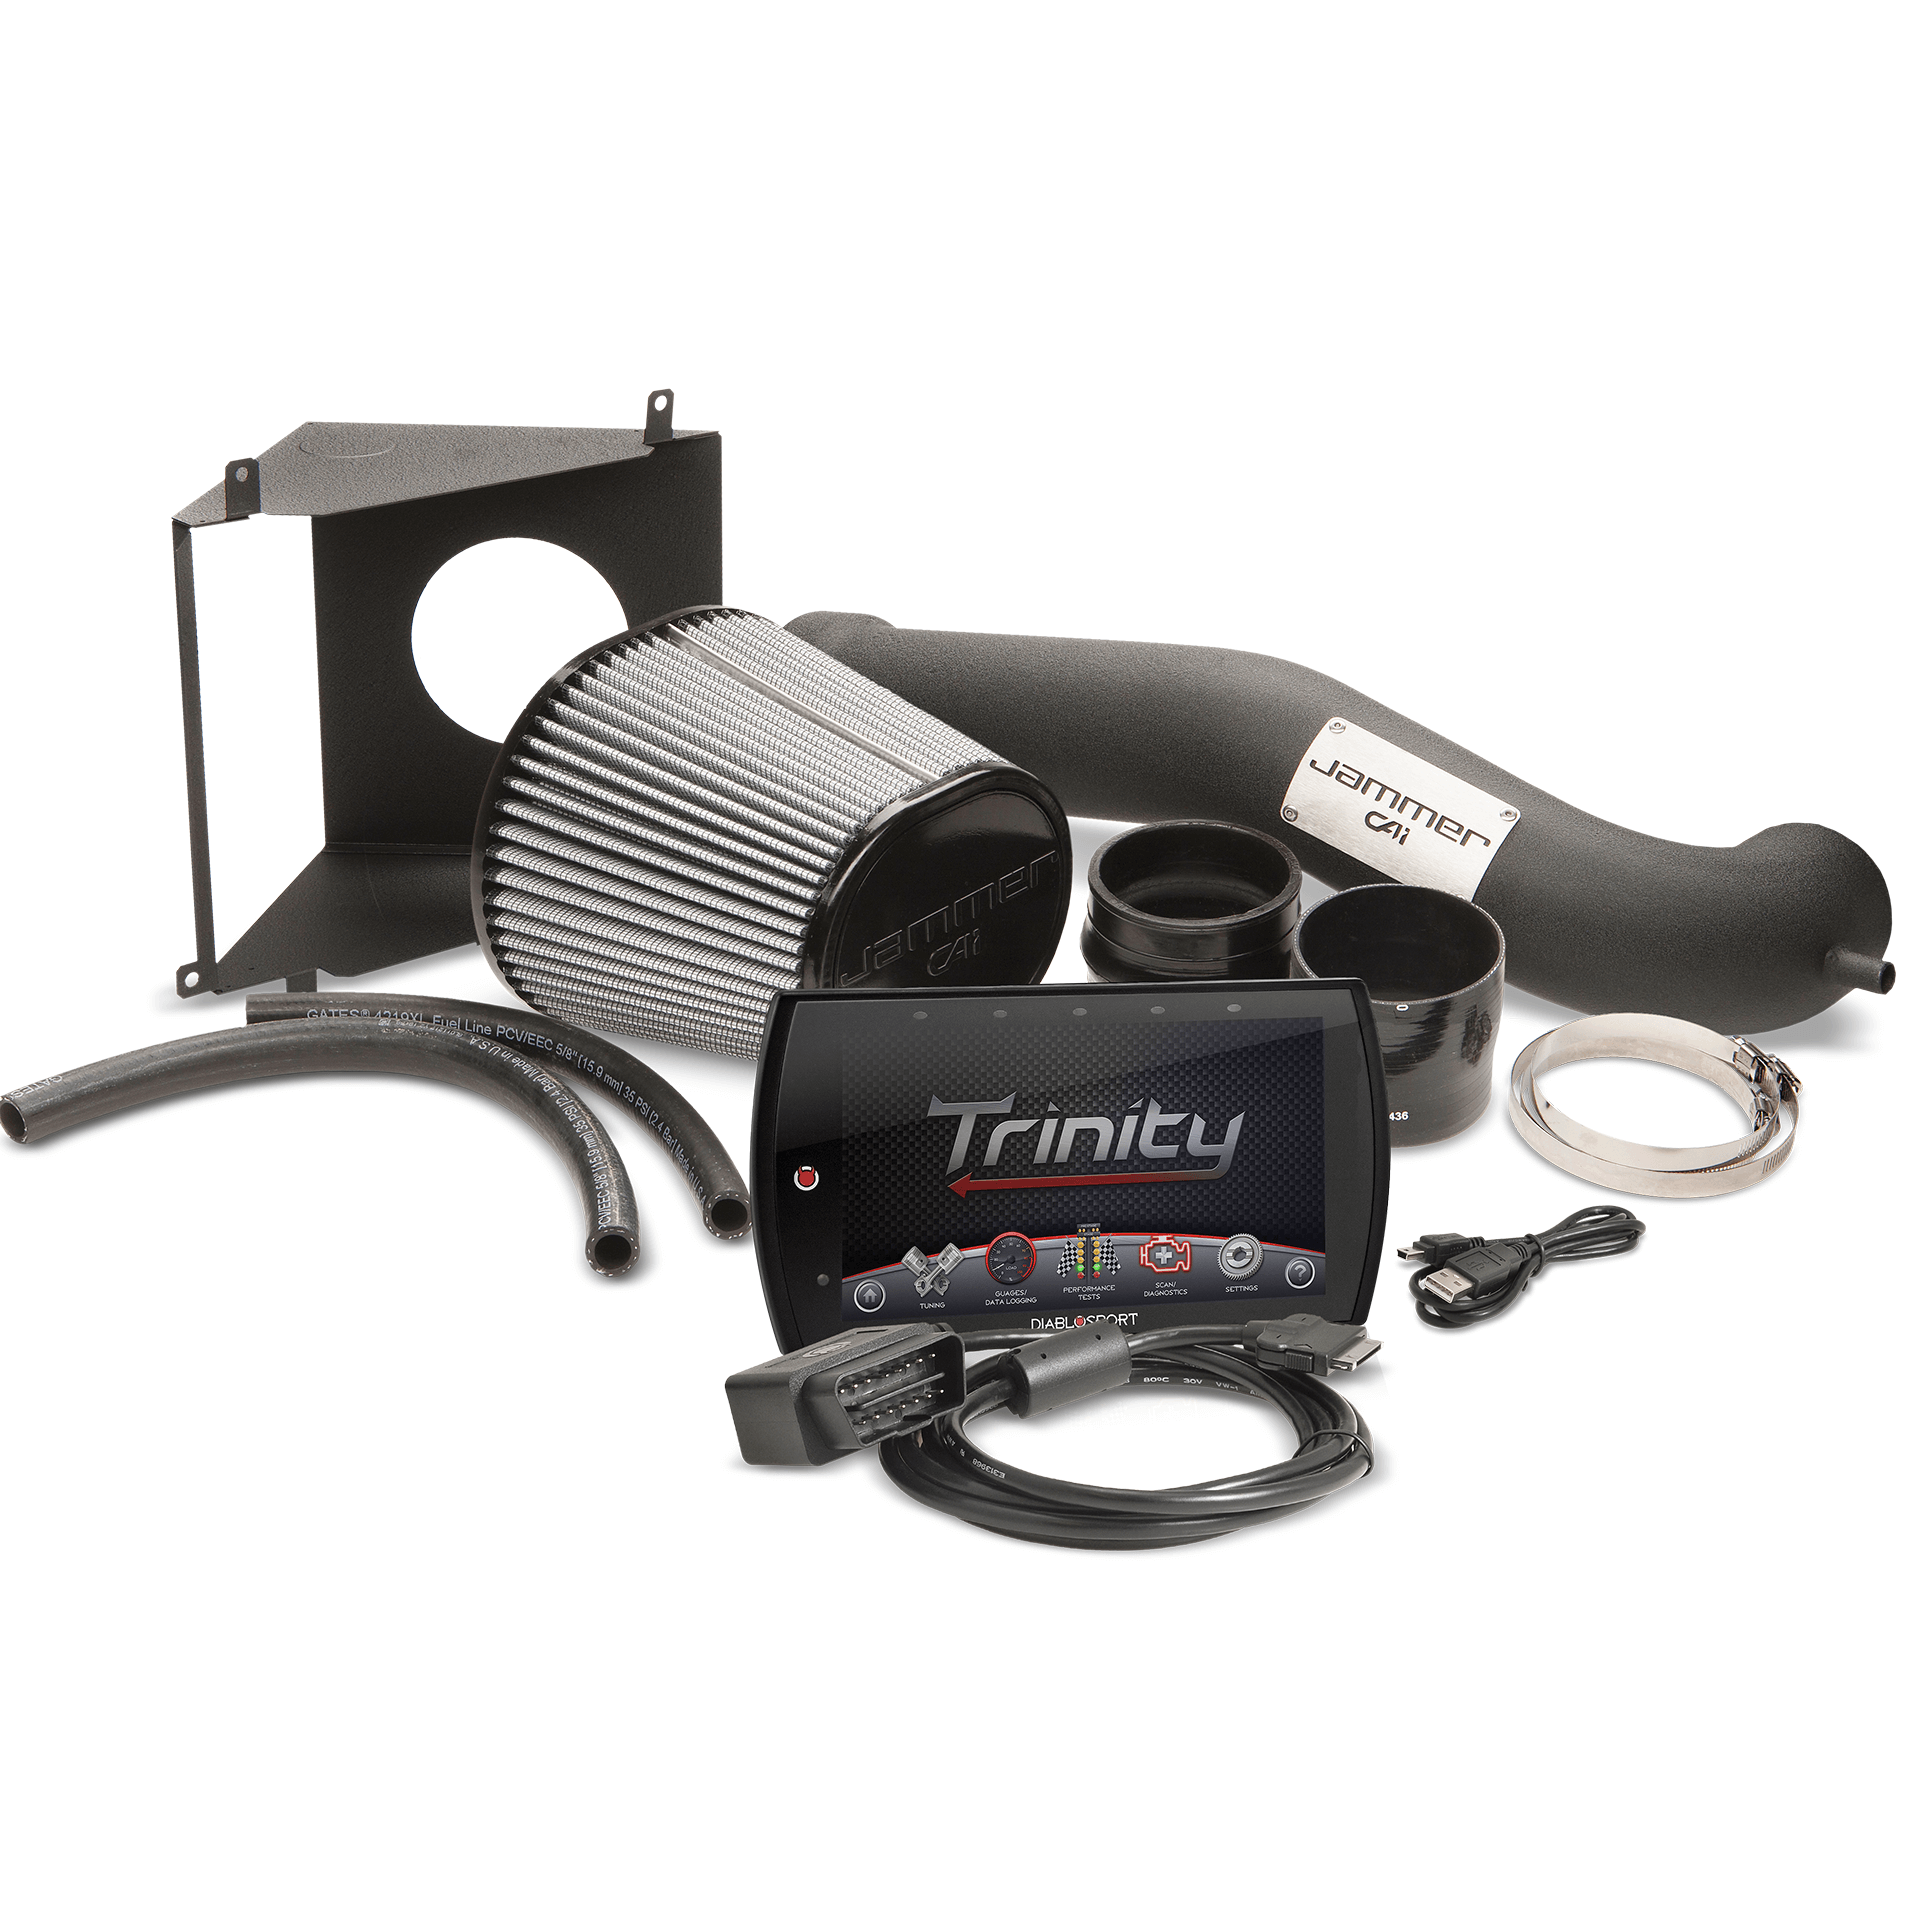 Dodge Challenger/Charger 15-17 5.7L Reaper™ Trinity 2 PCM Swap Stage 1 Kit